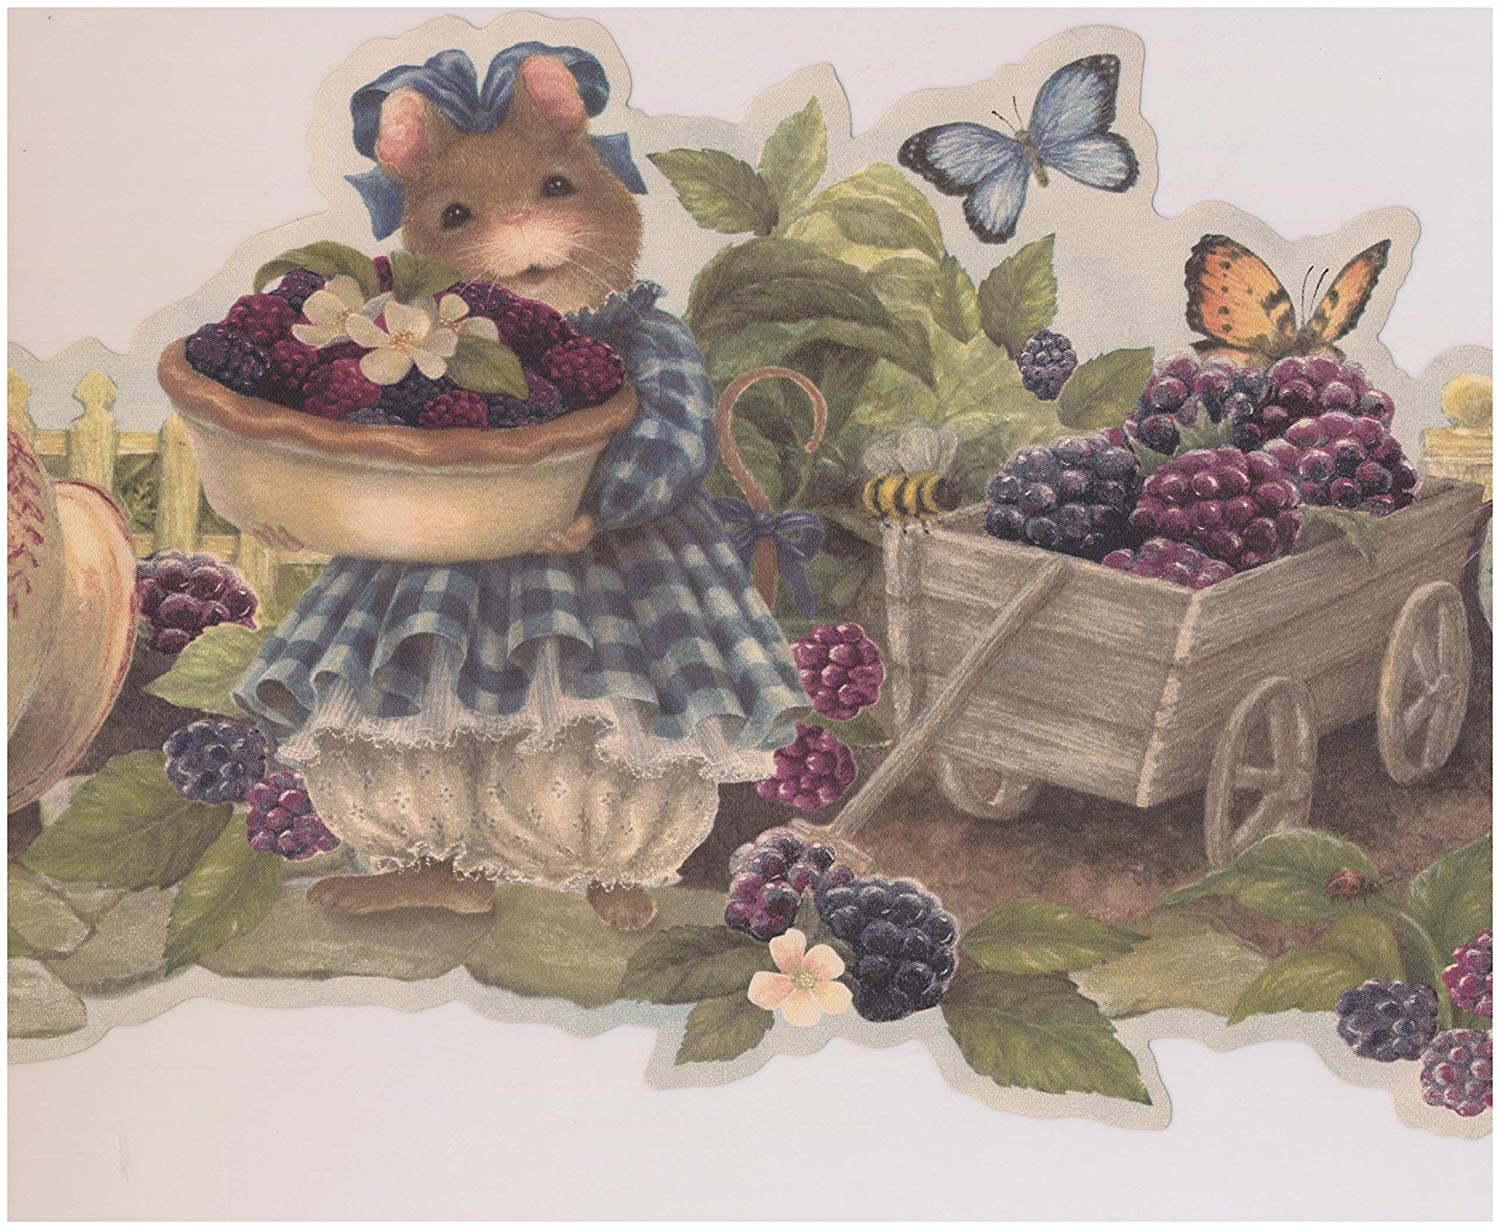 Mouse Offering Berries Farmhouse Wallpaper Border Retro Design 1500x1229